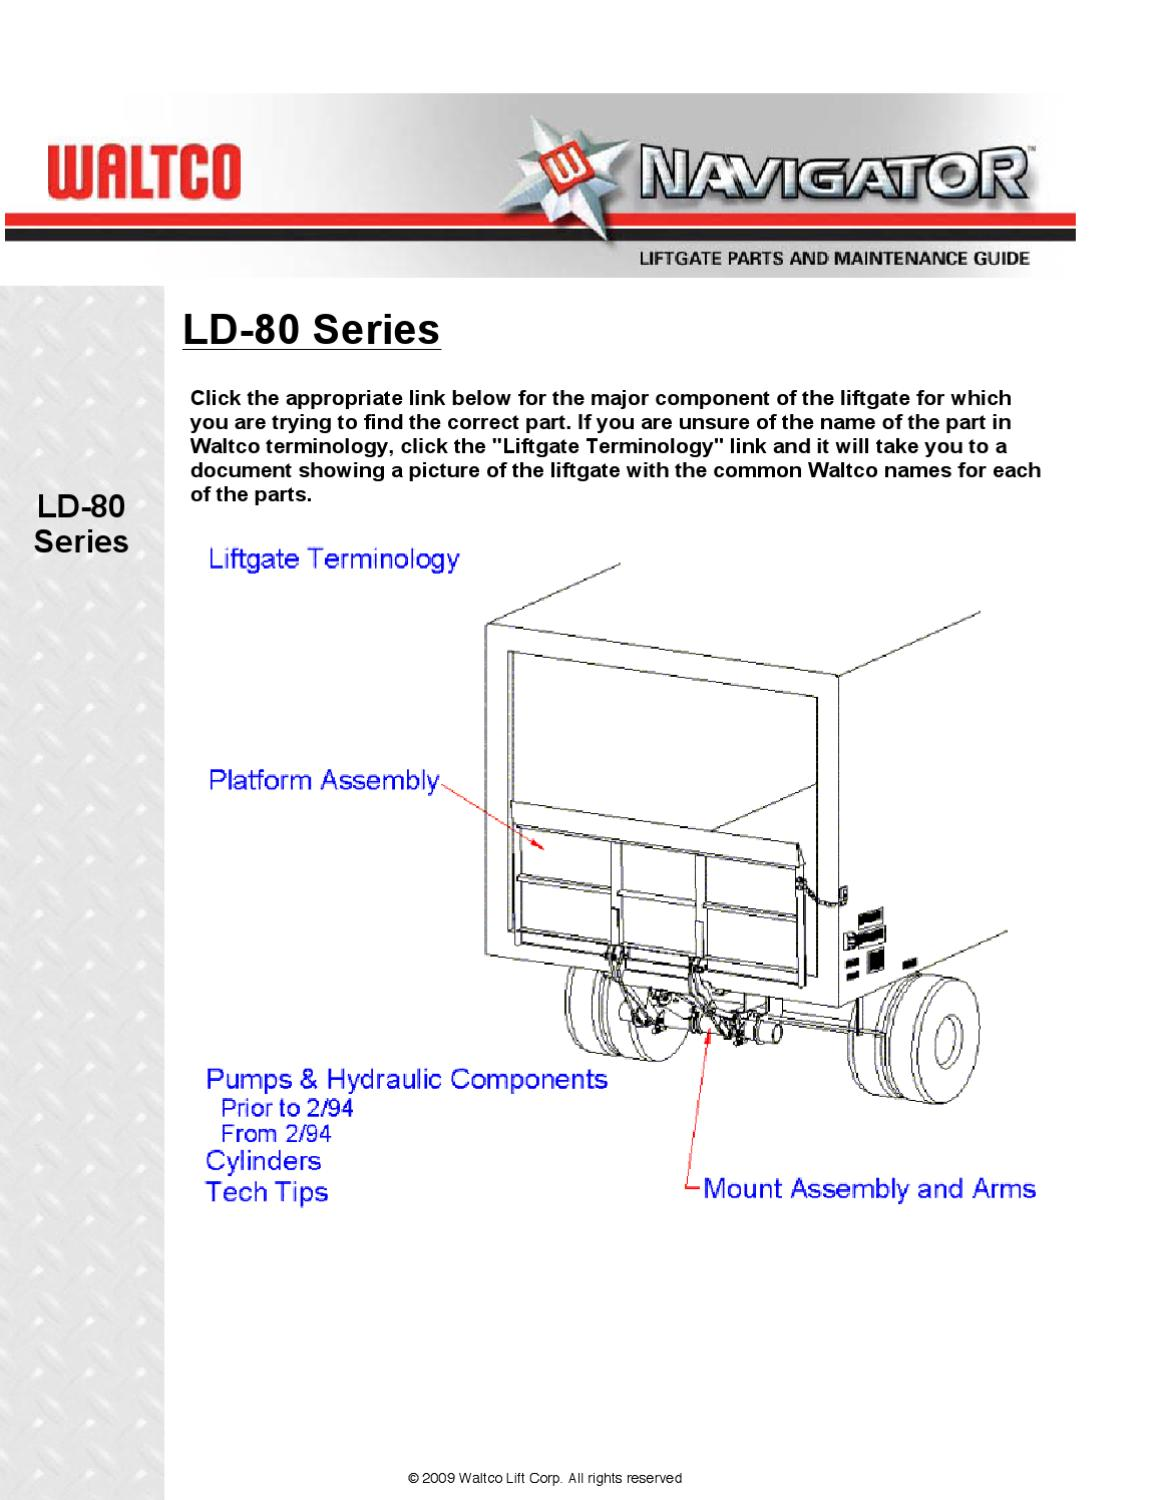 waltco ld 80 series liftgate by the liftgate parts co issuu western plow pump diagram waltco hydraulic pump wiring diagram #2